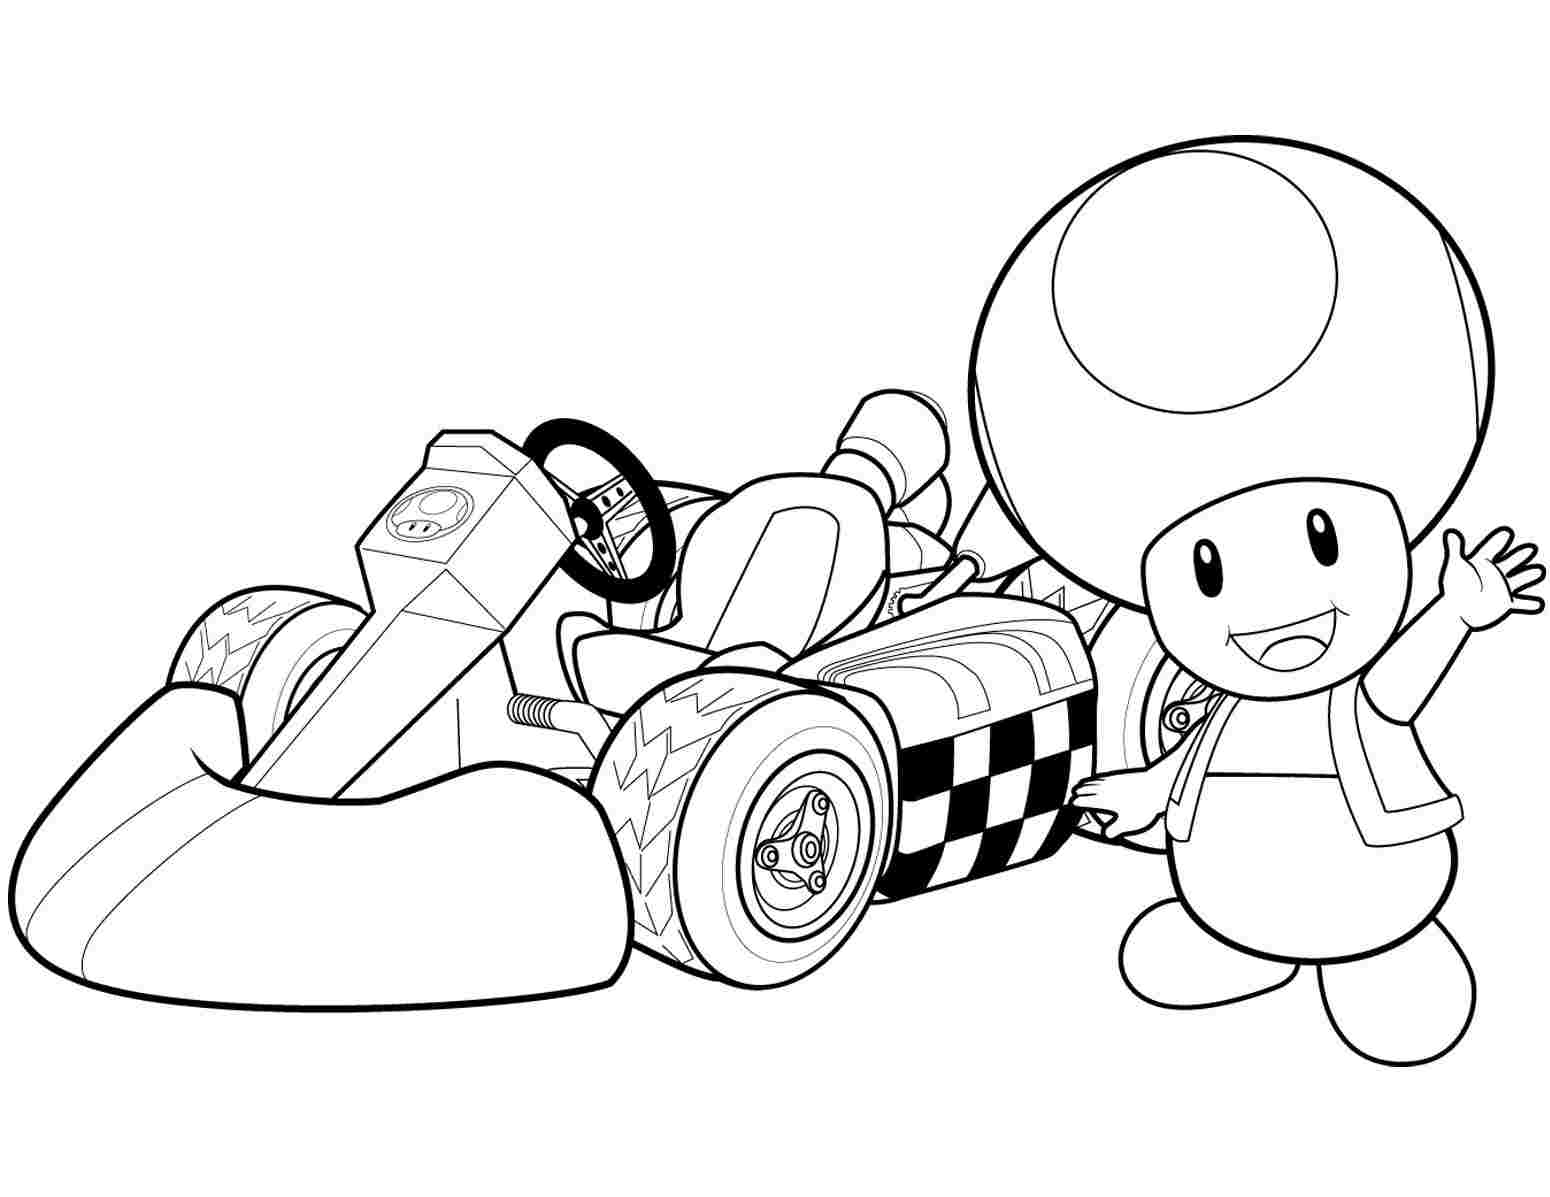 Toad and his racing car in Mario Kart Wii Coloring Page